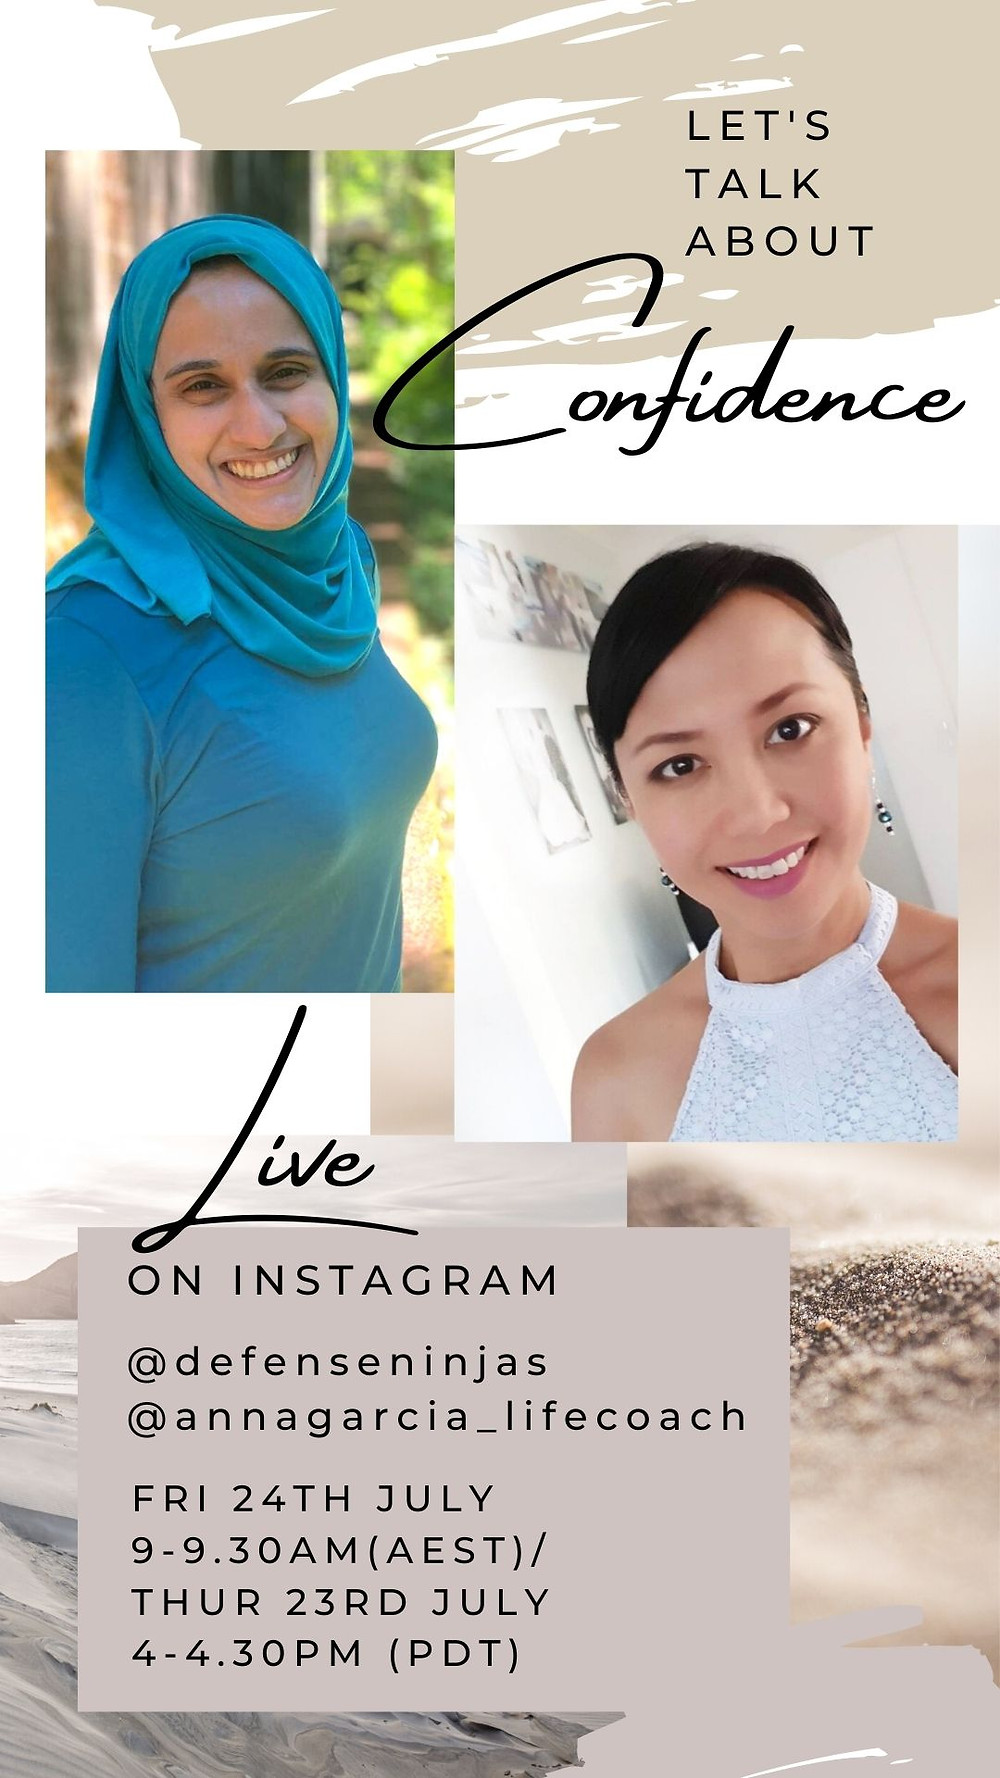 I am a guest speaker with @defenseninjas talking about Confidence LIVE on instagram this Friday 24 July 9-9.30am AEST